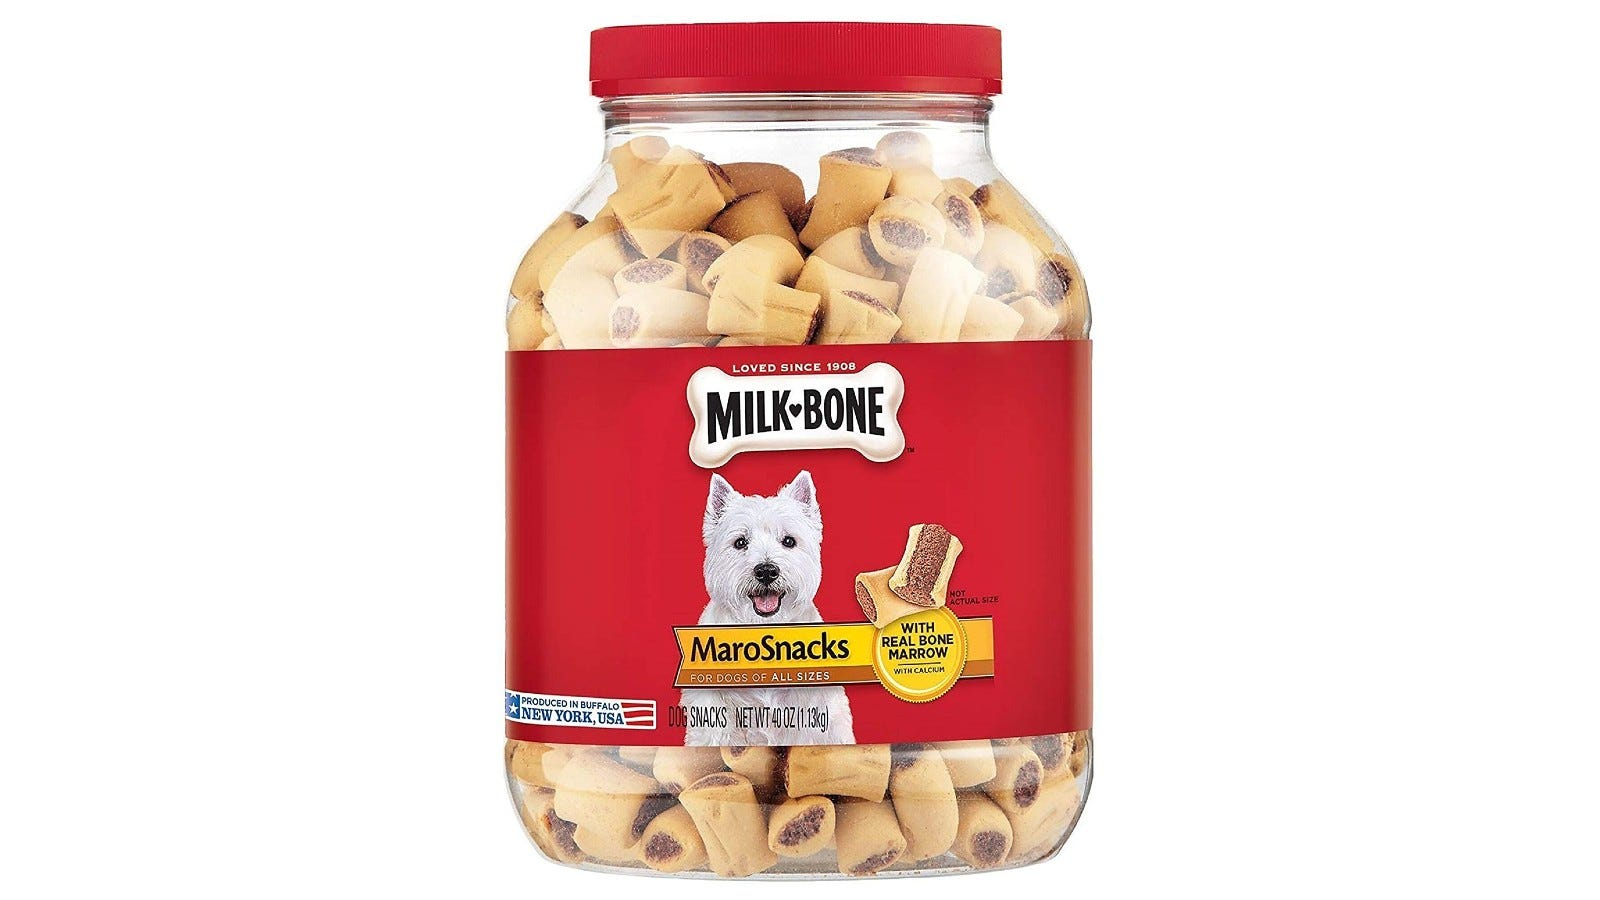 These dog treats are also incredibly nutritional